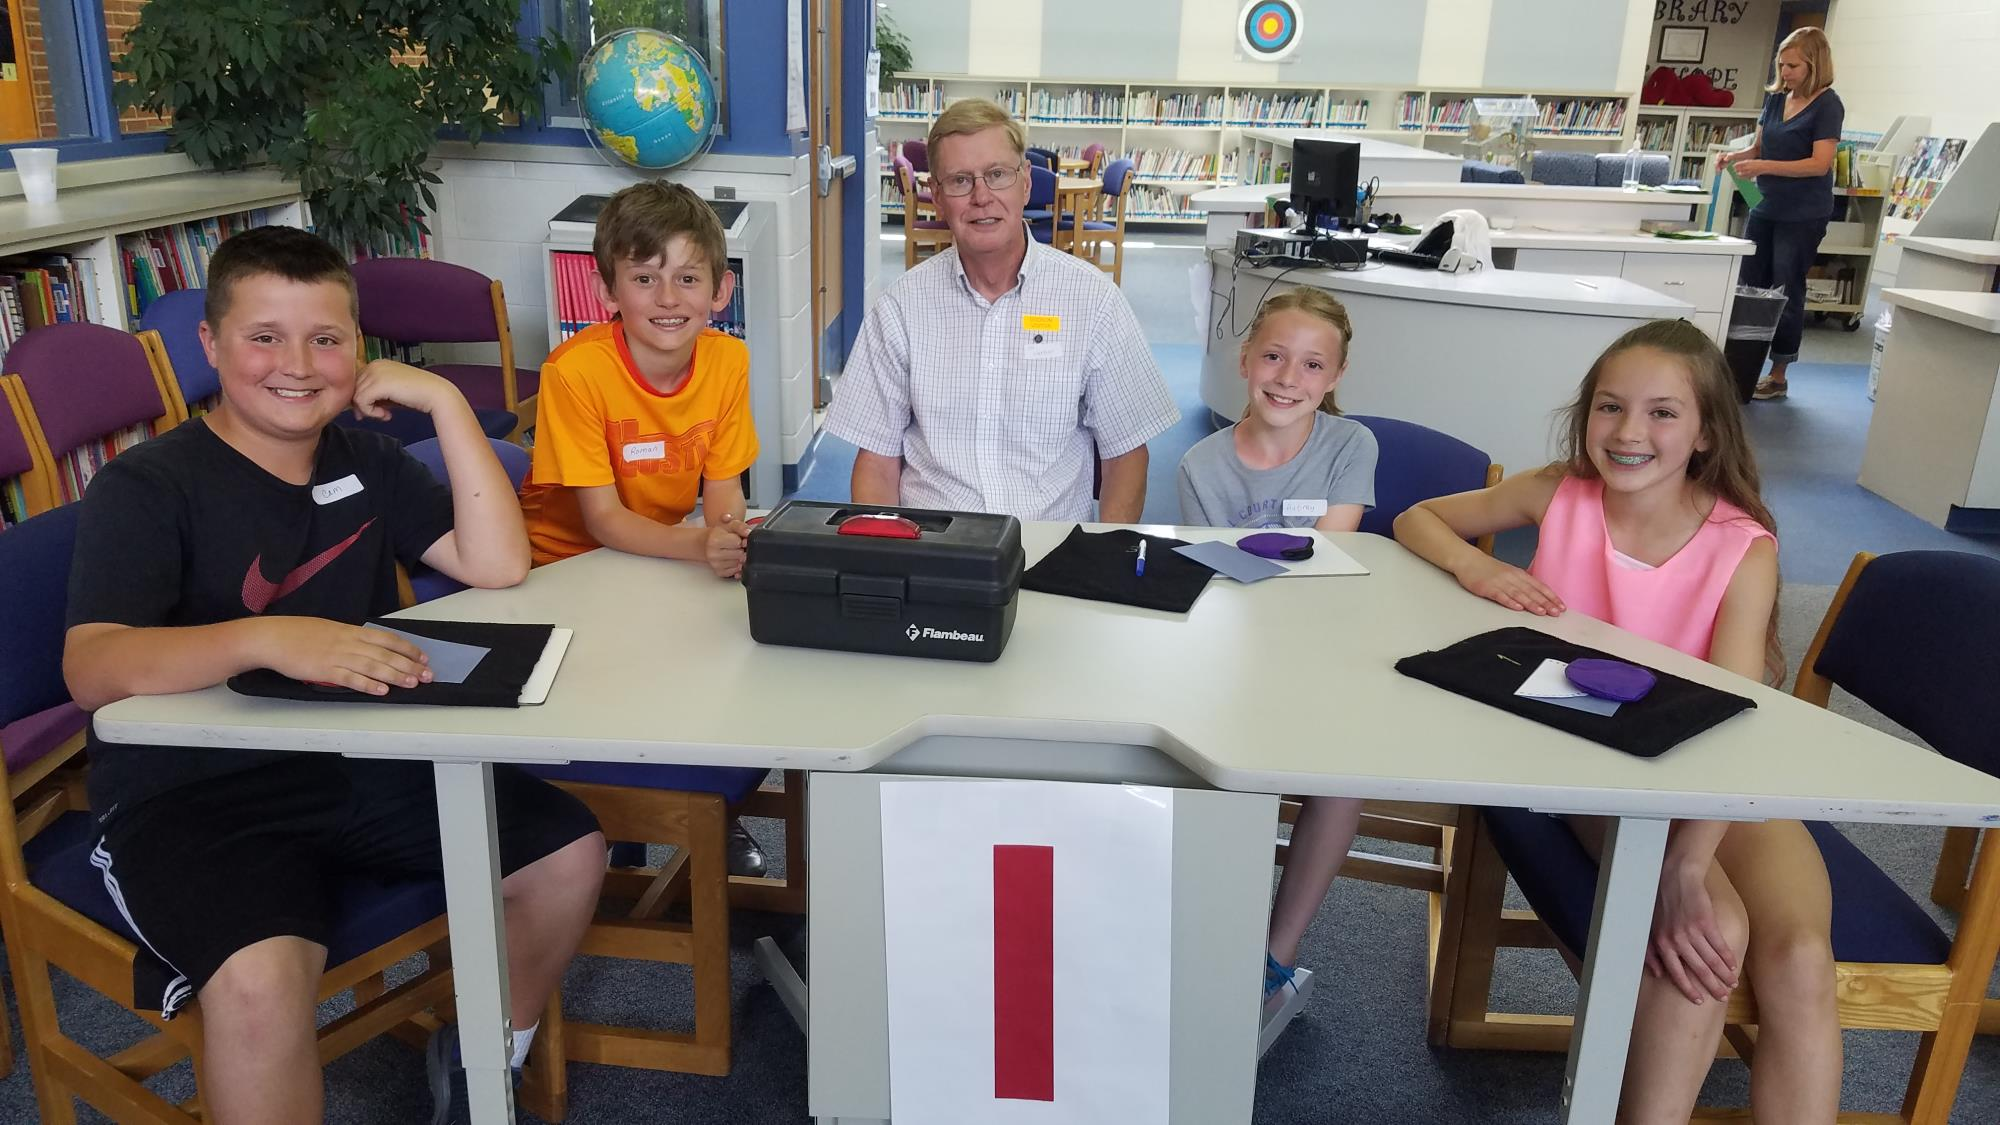 Plymouth-Canton Optimist Club sponsors Math Jeopardy at Dodson